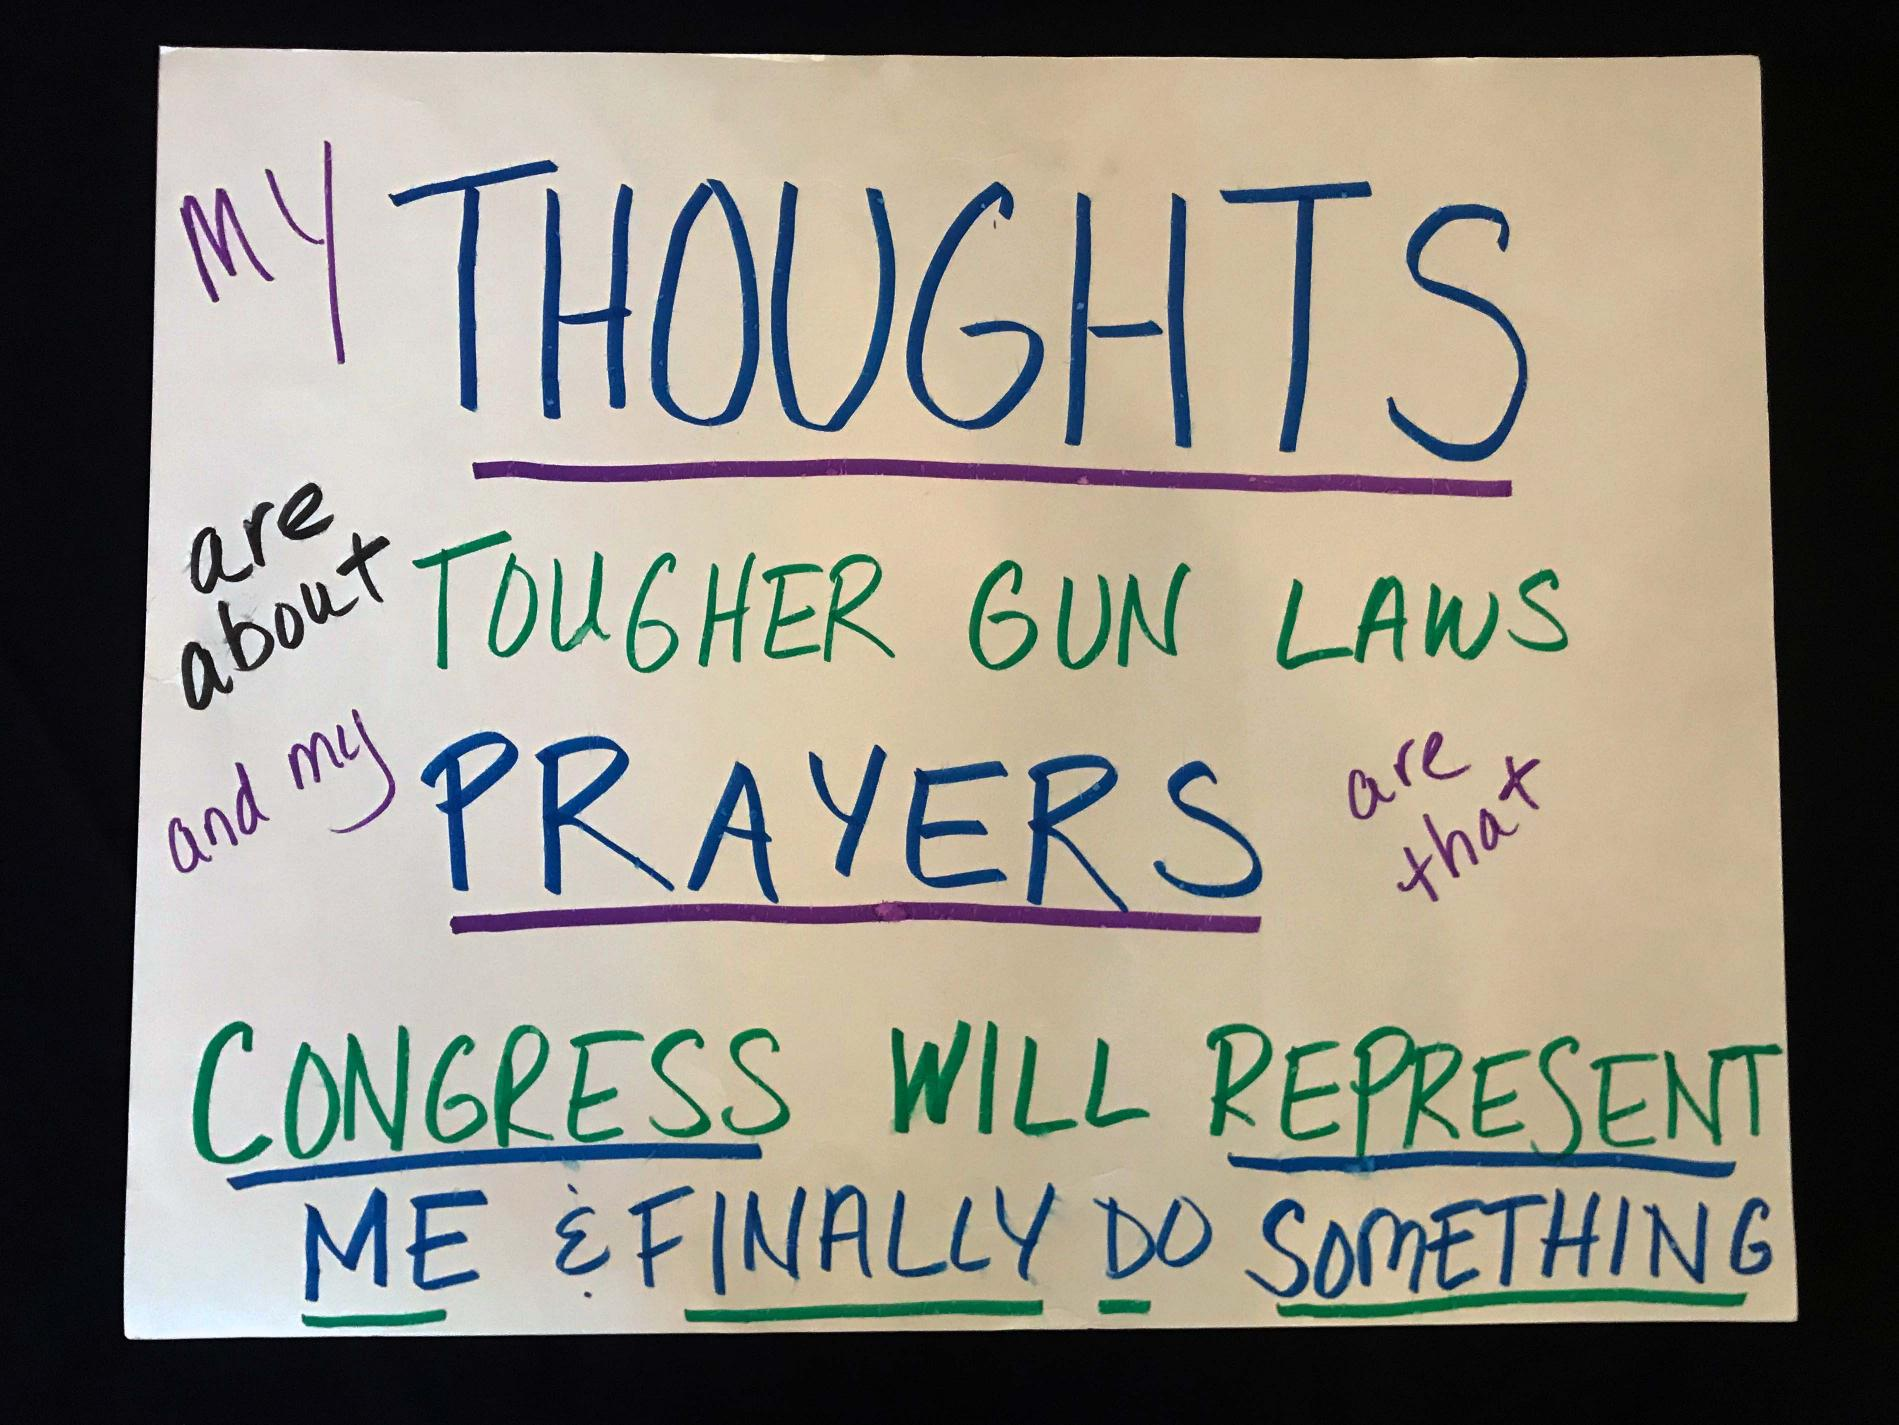 "Charlotte March for Our Lives, 2018. Sign reads: ""My thoughts are about tougher gun laws, and my prayers are that Congress will represent me and finally do something."""